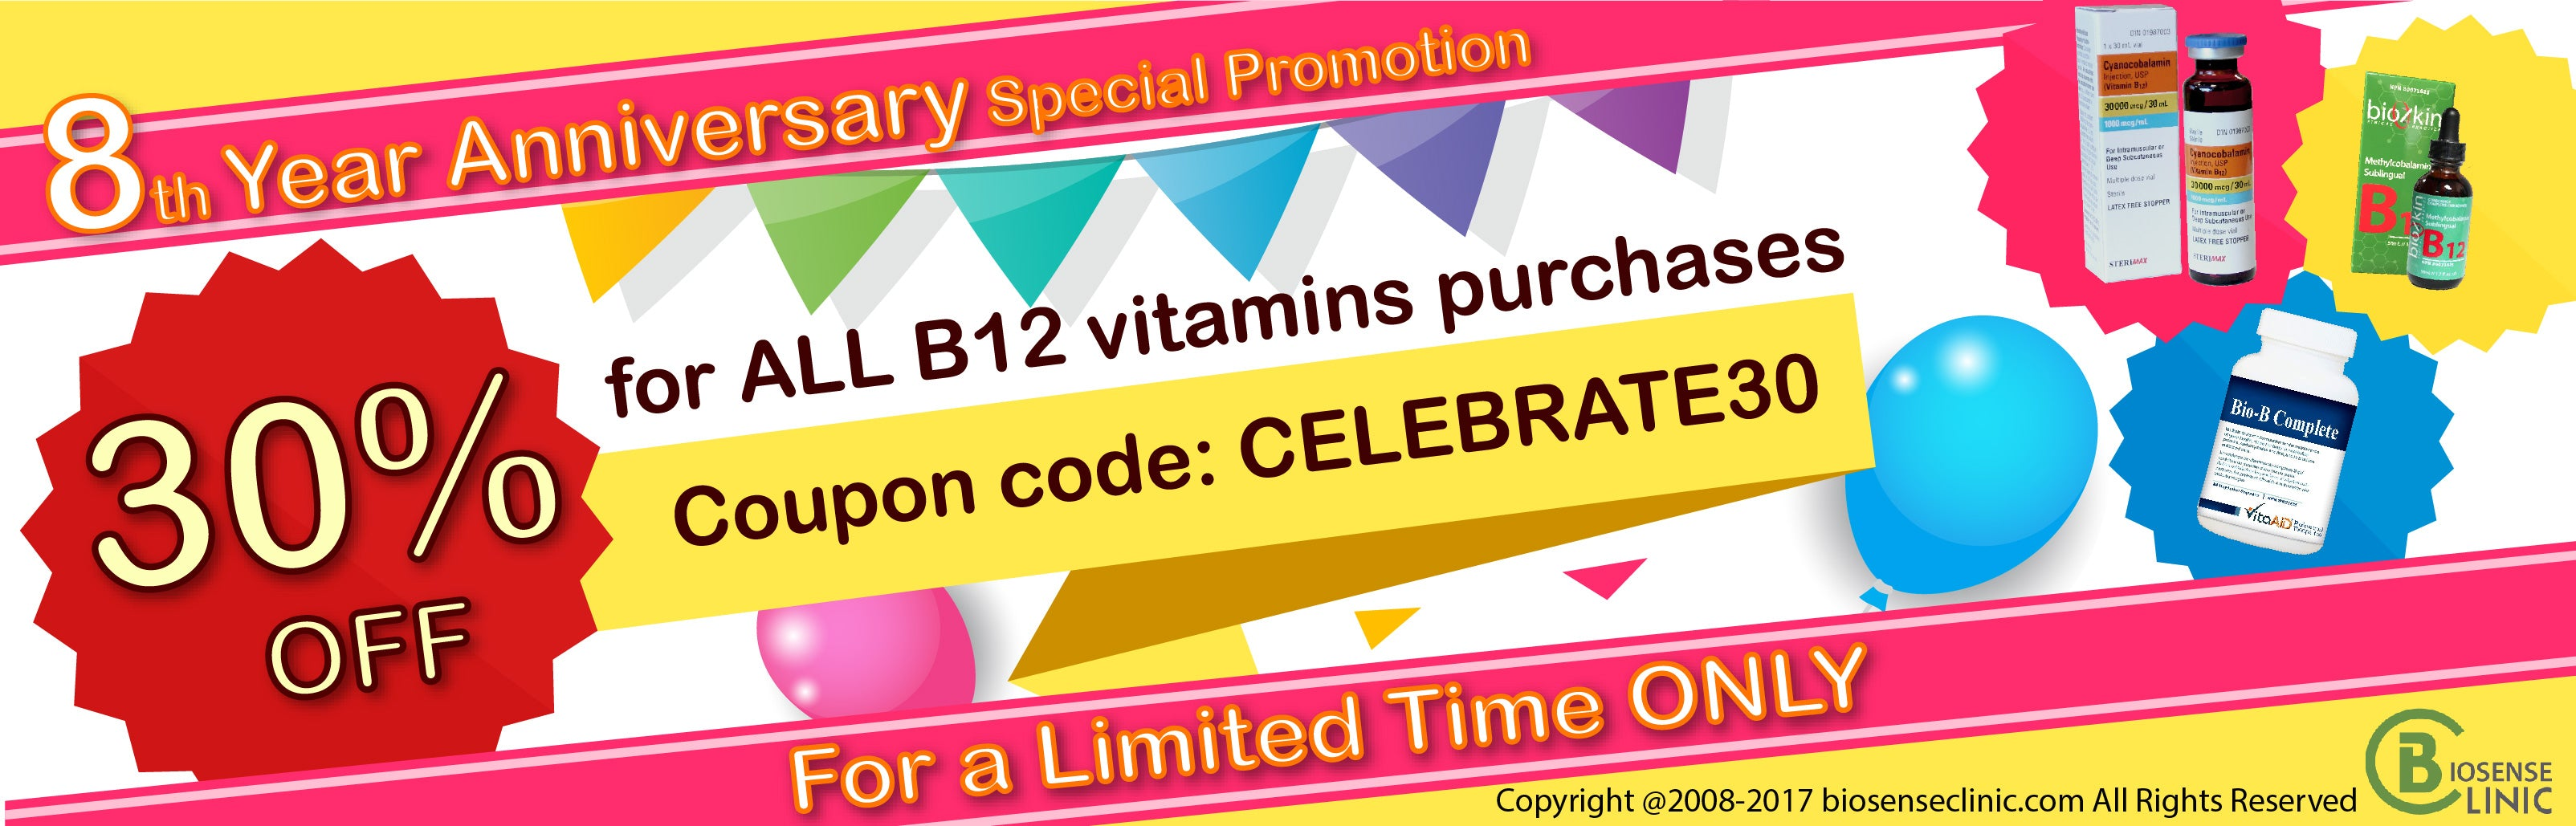 8th year anniversary special promotion banner